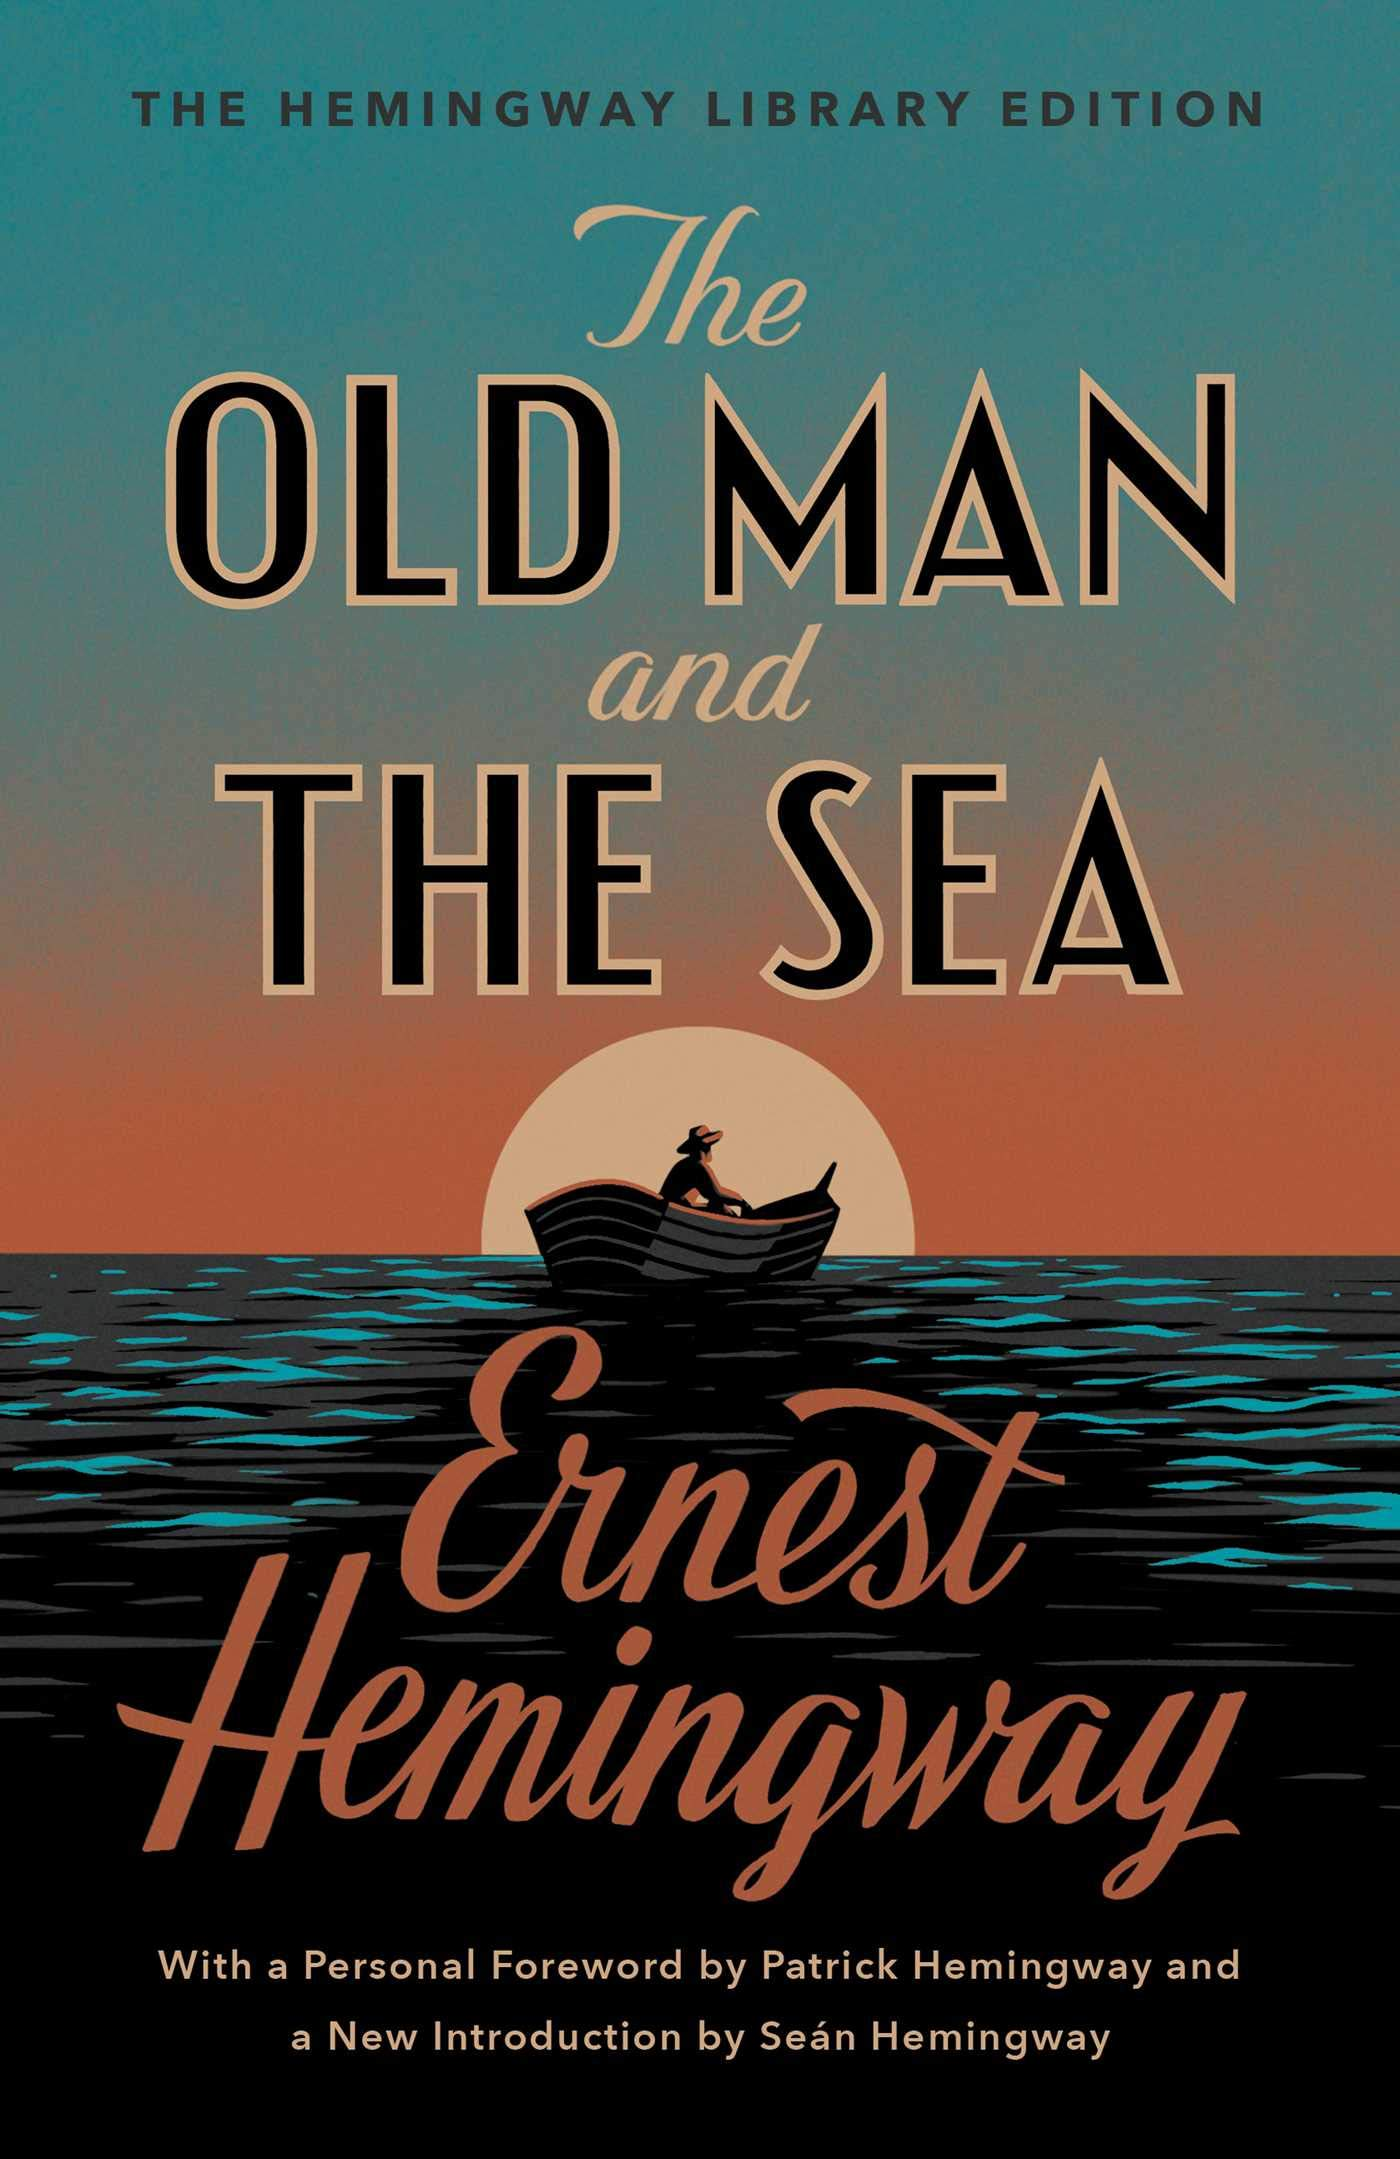 Ernest Hemmingway's The Old Man and the Sea